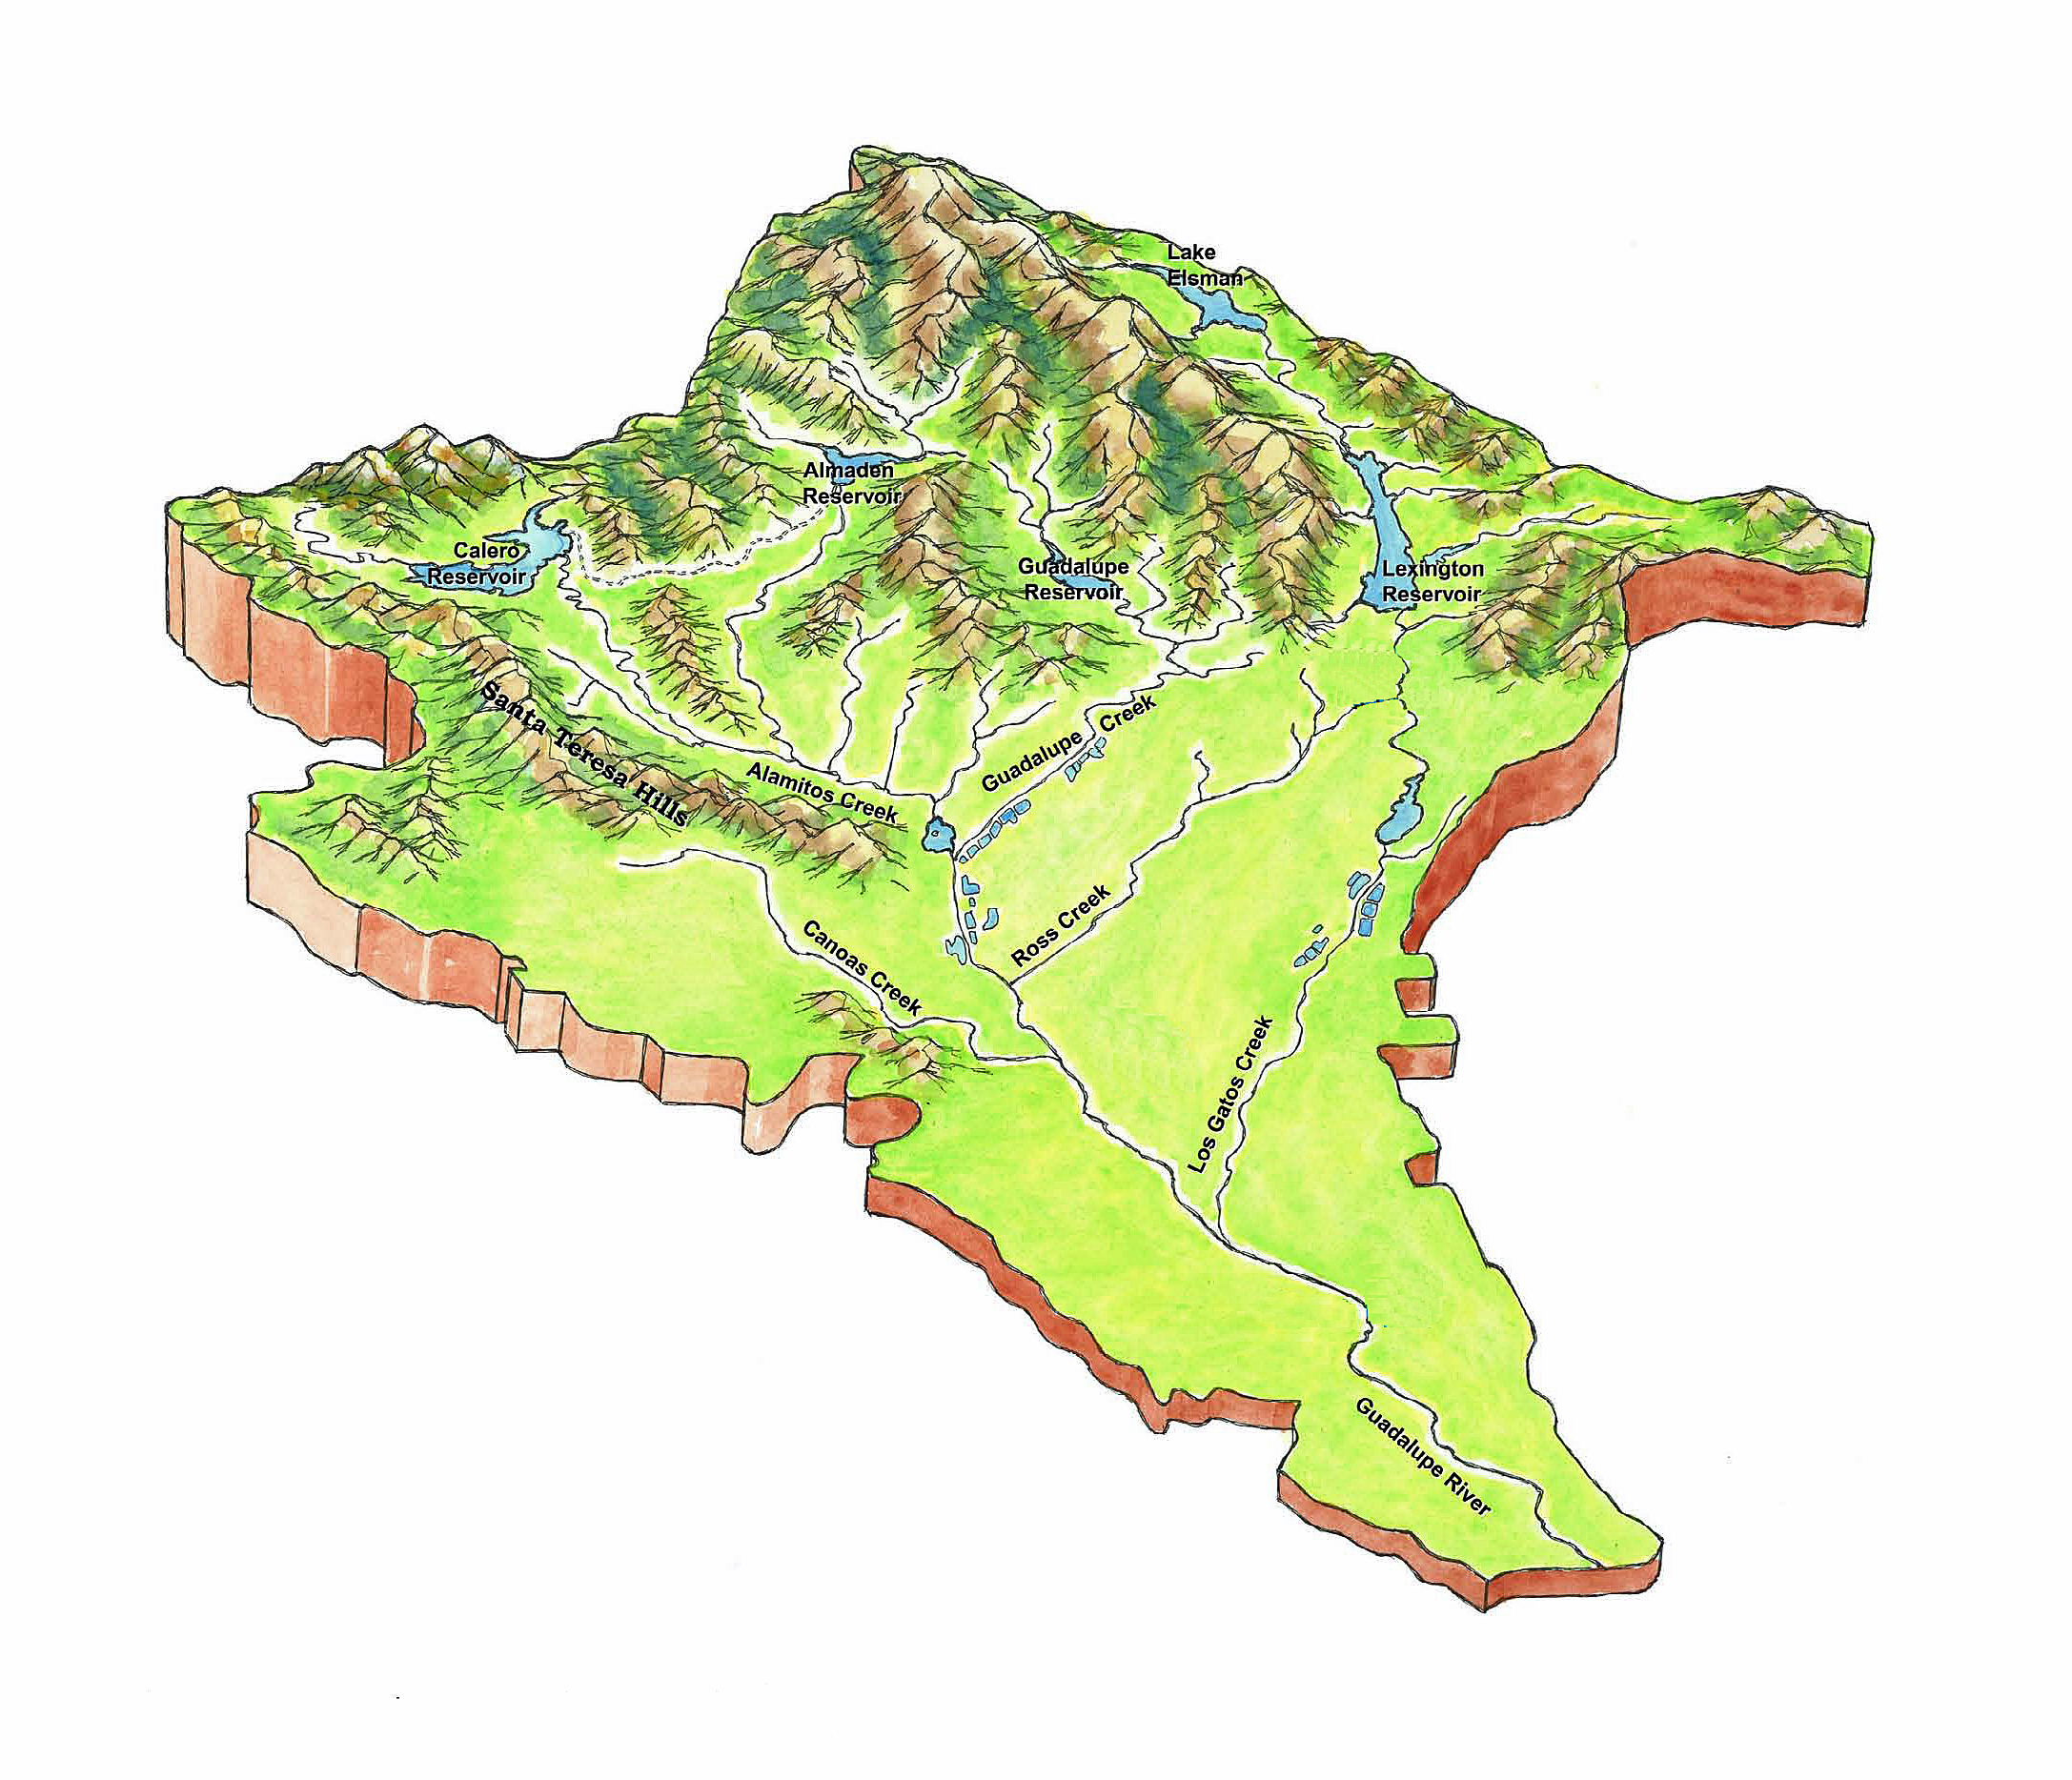 FileGuadalupe River Watershed Topo Mapjpg Wikimedia Commons - 3d topographical map of us